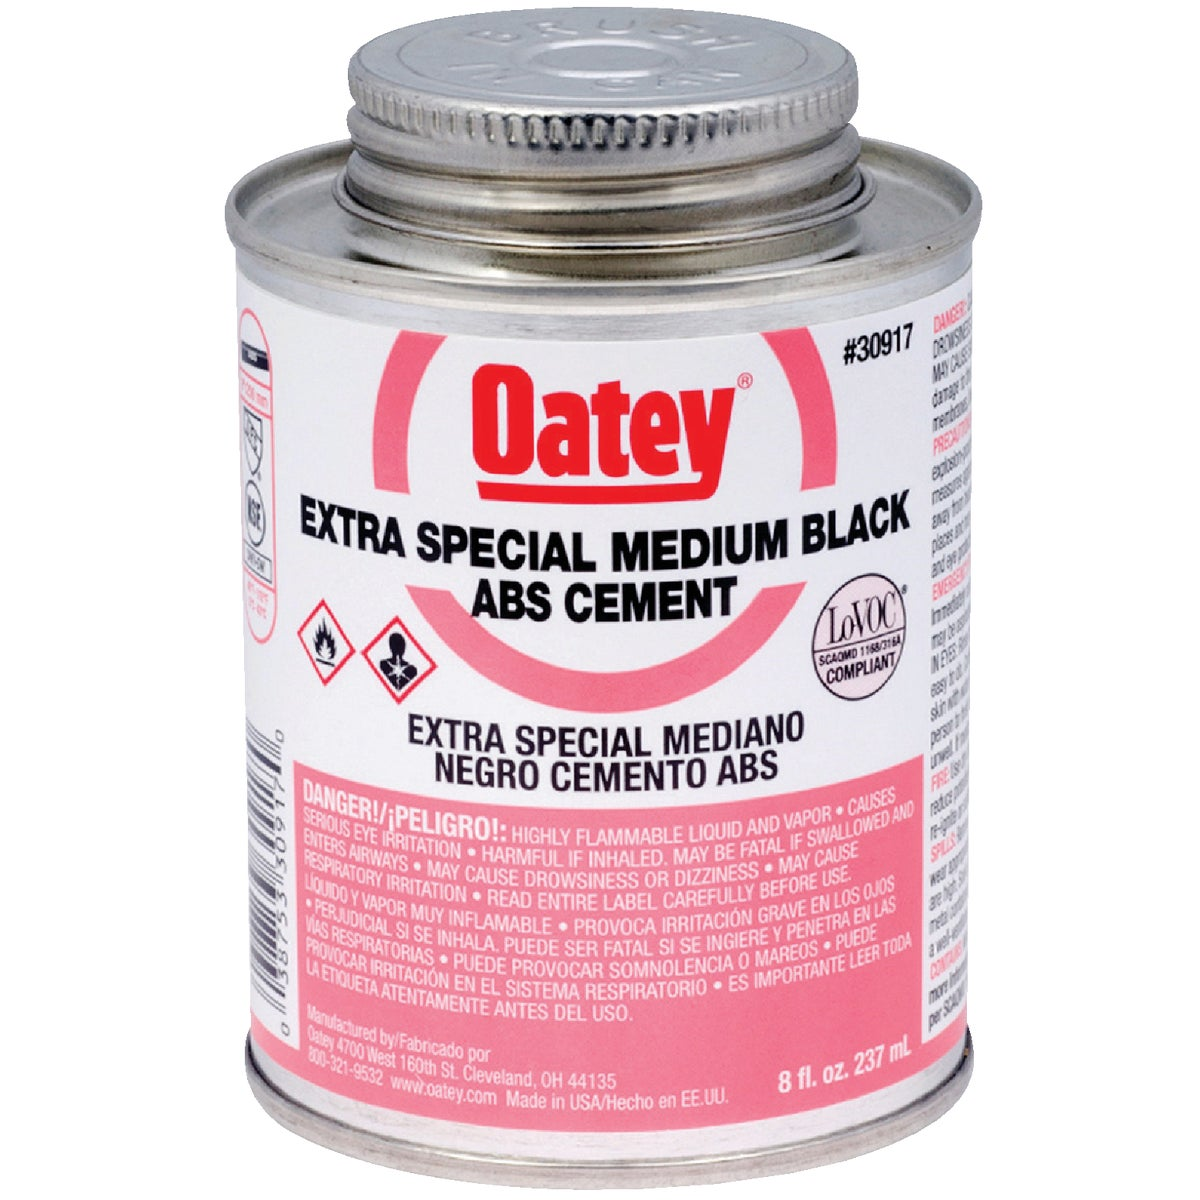 1/2PINT ABS CEMENT - 30917 by Oatey Scs